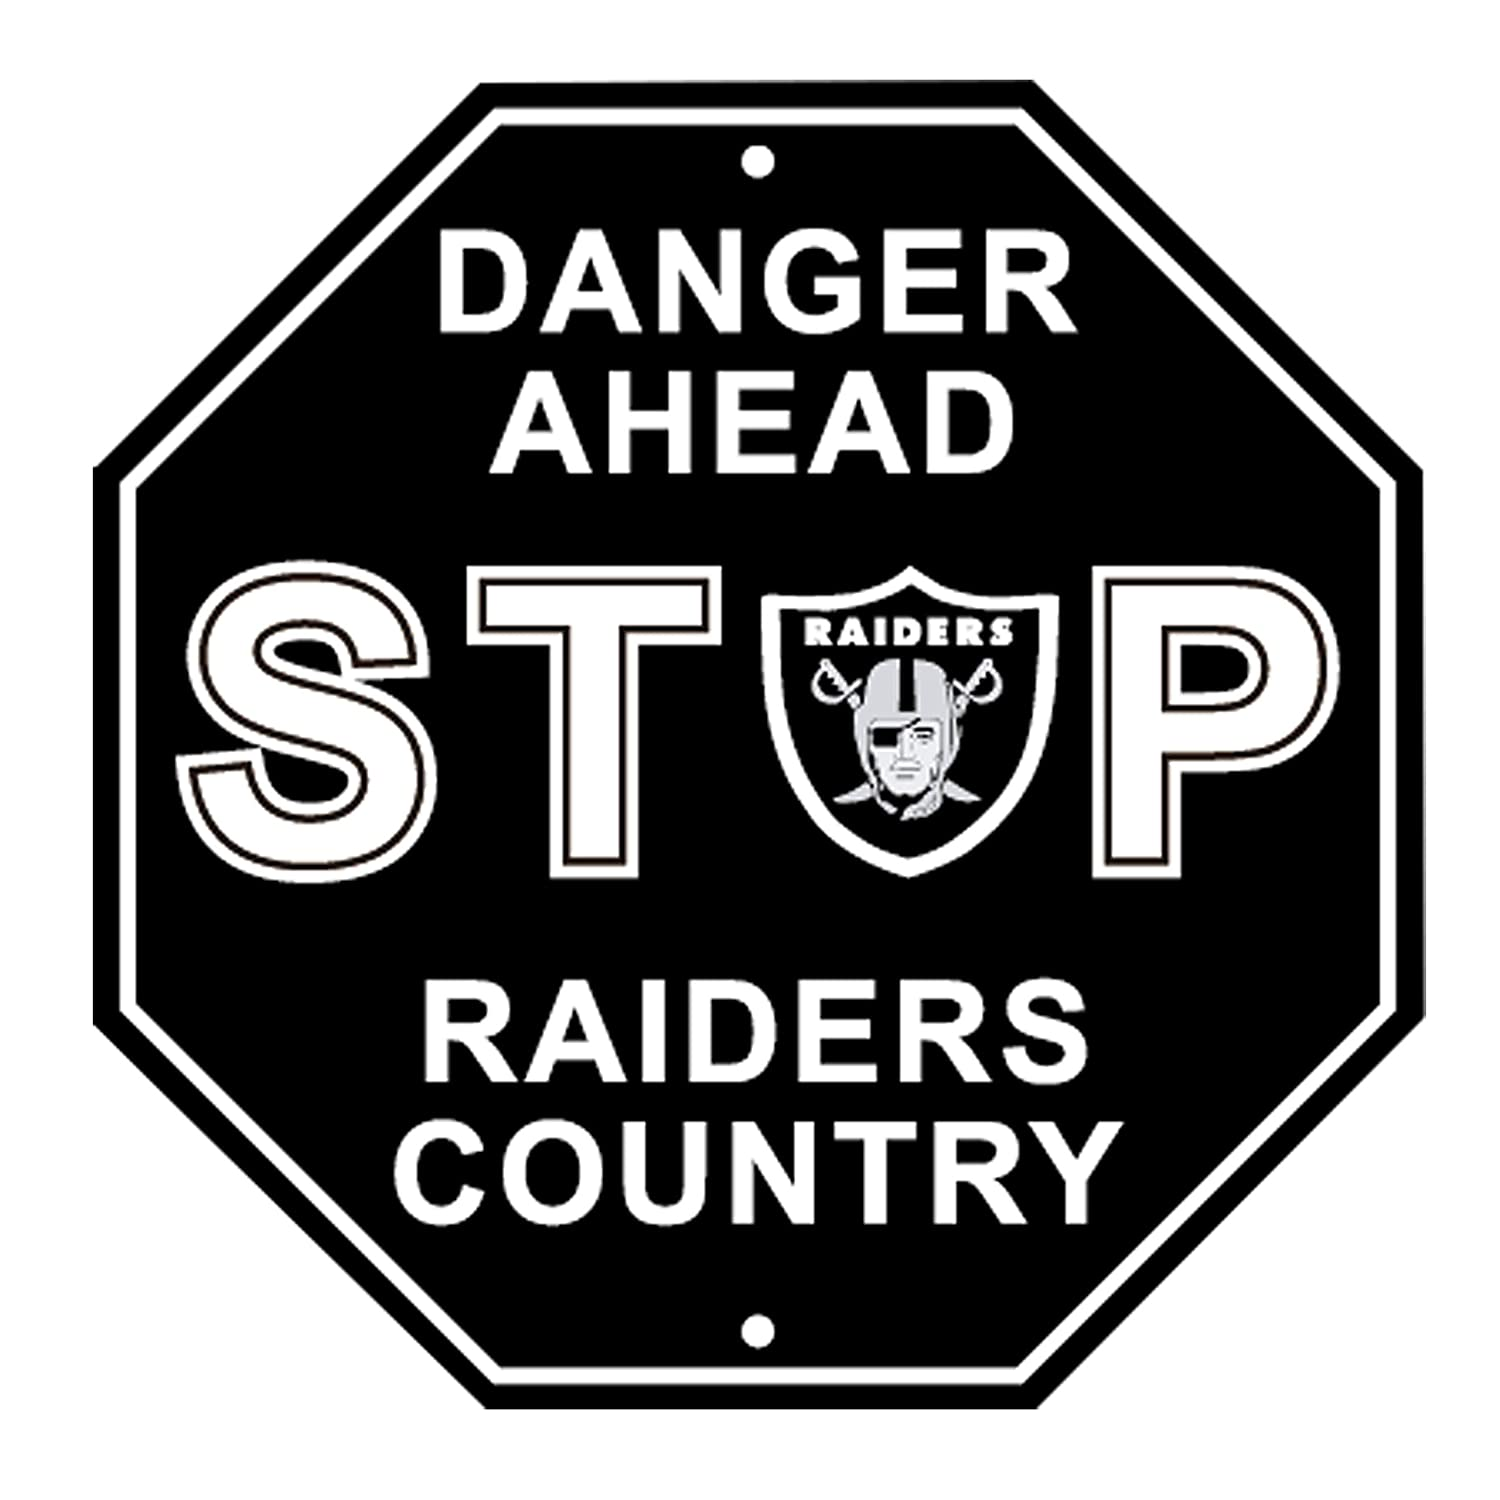 RongJ- store NFL Stop Sign Parking Sign 12' x 12' Danger Ahead for Fans 12 x 12Danger Ahead